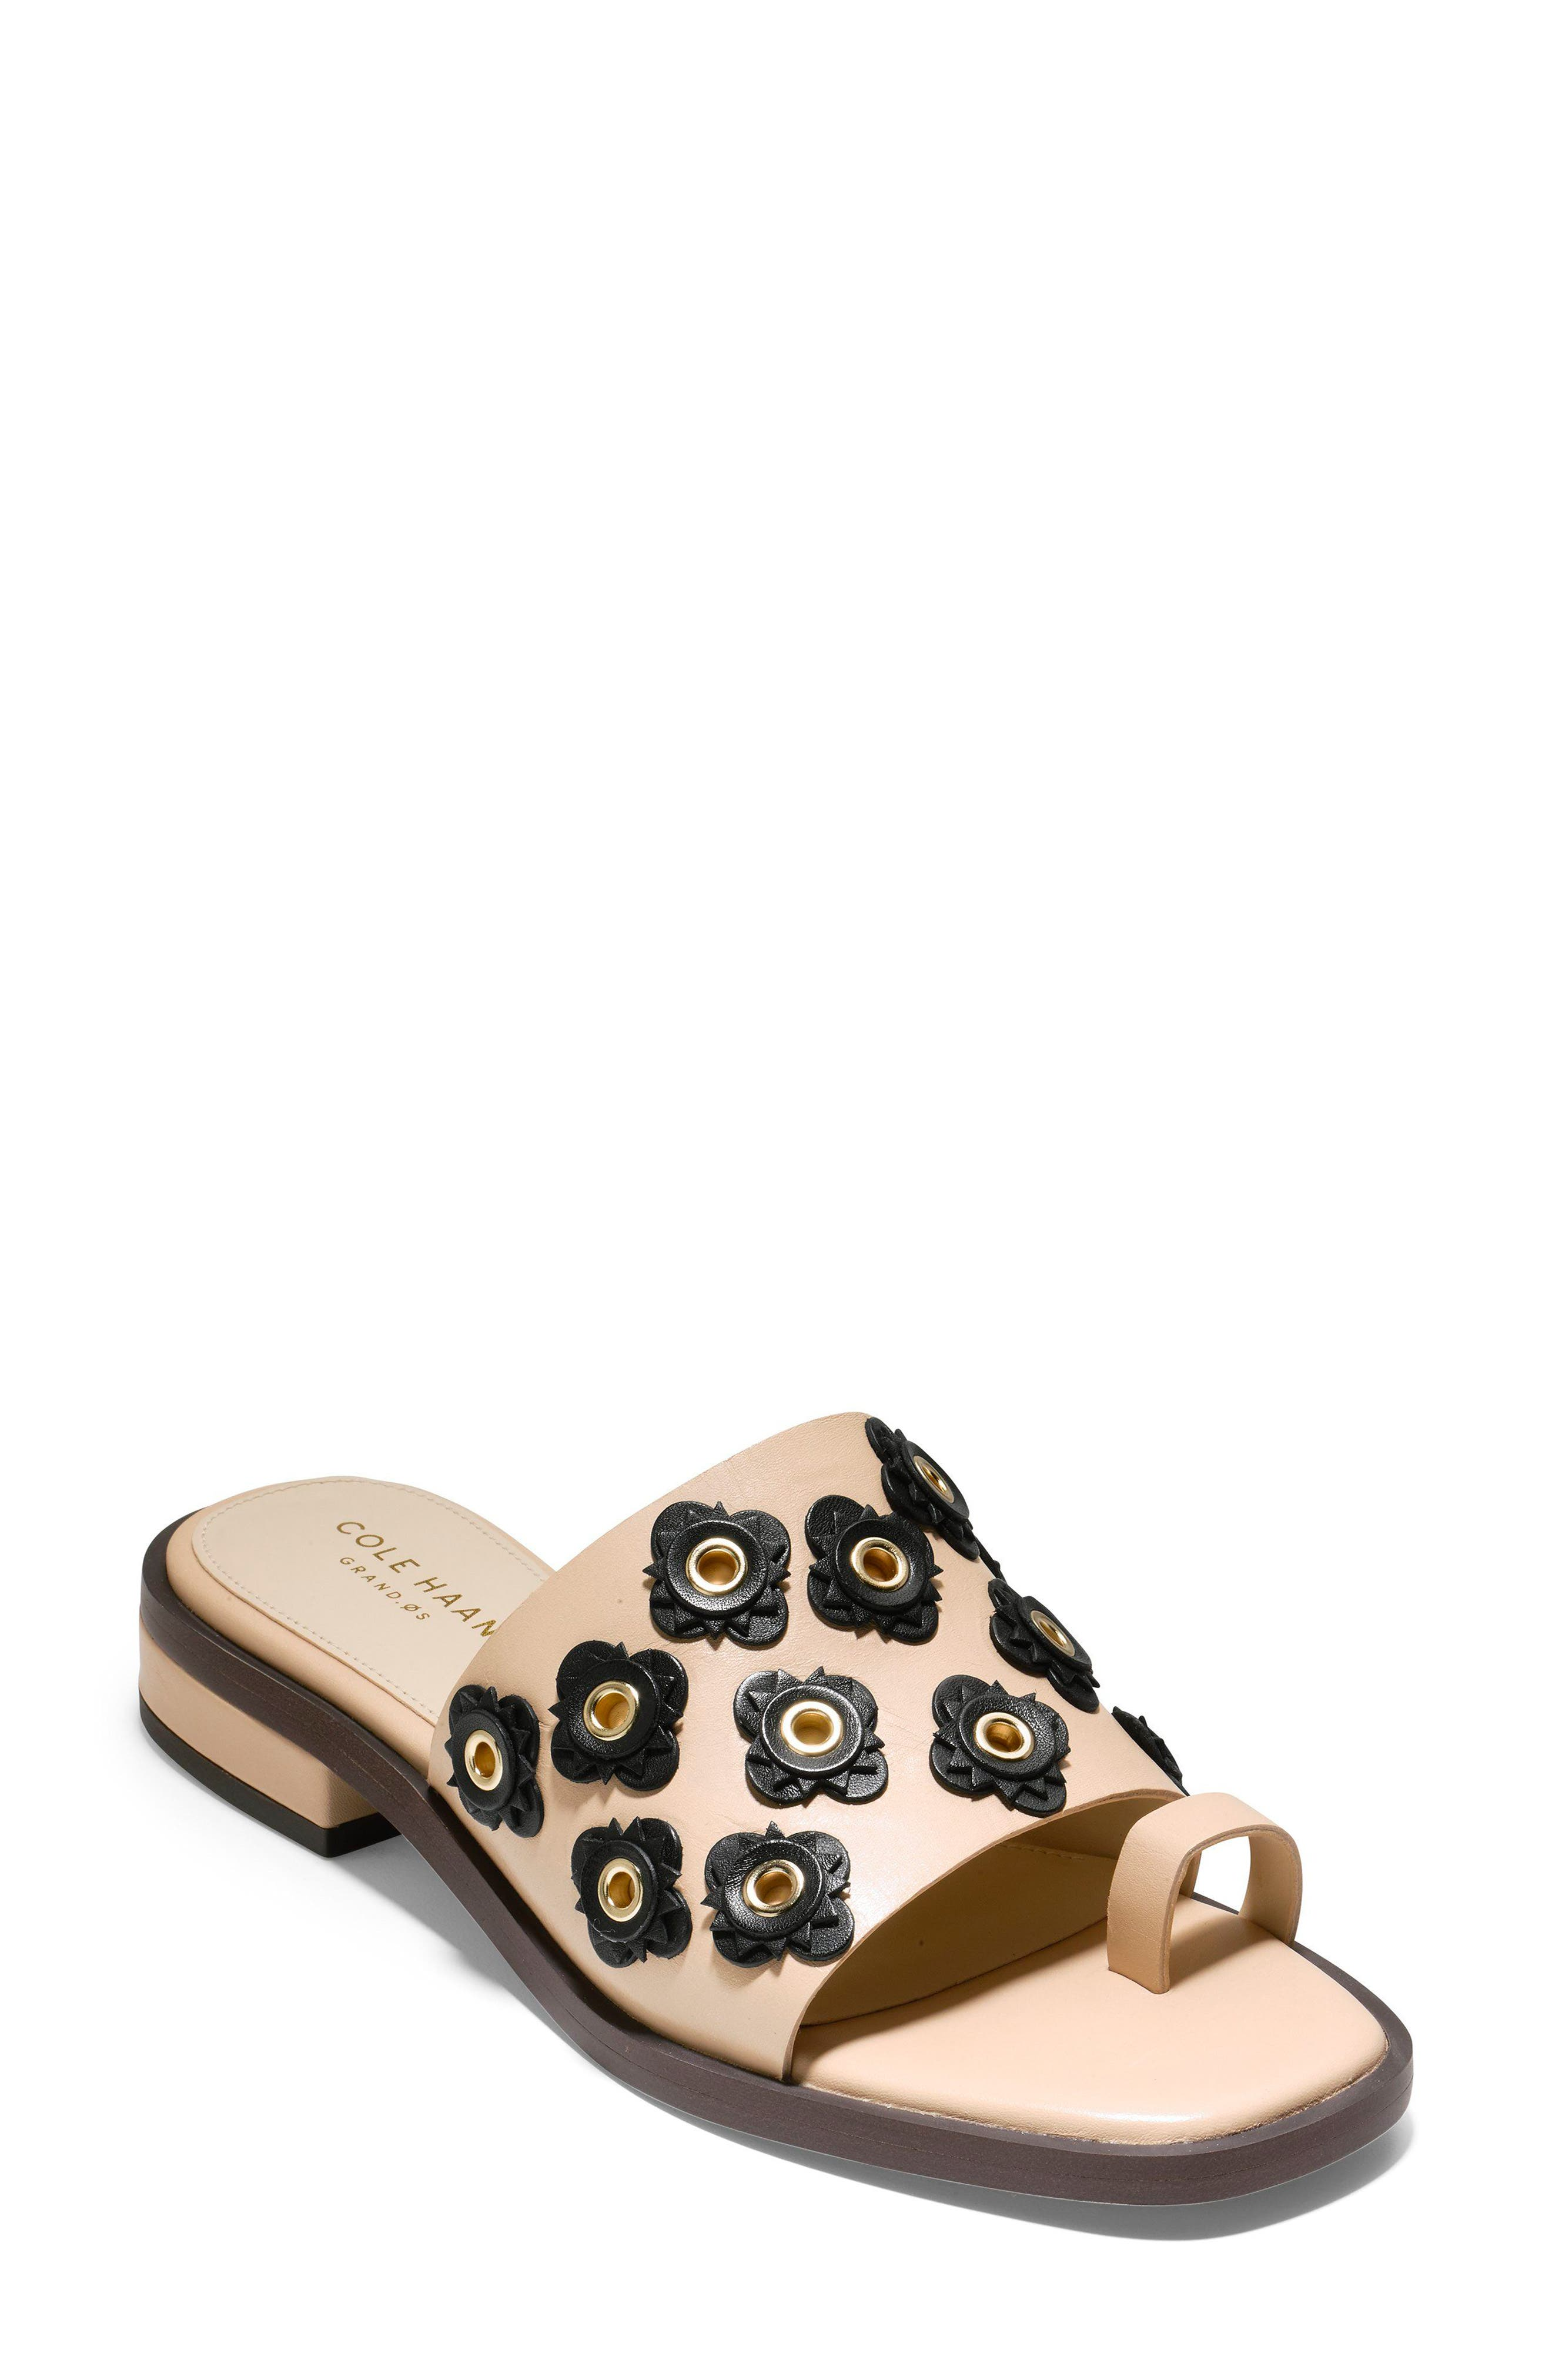 Carly Floral Sandal,                             Main thumbnail 1, color,                             Nude/ Black Leather